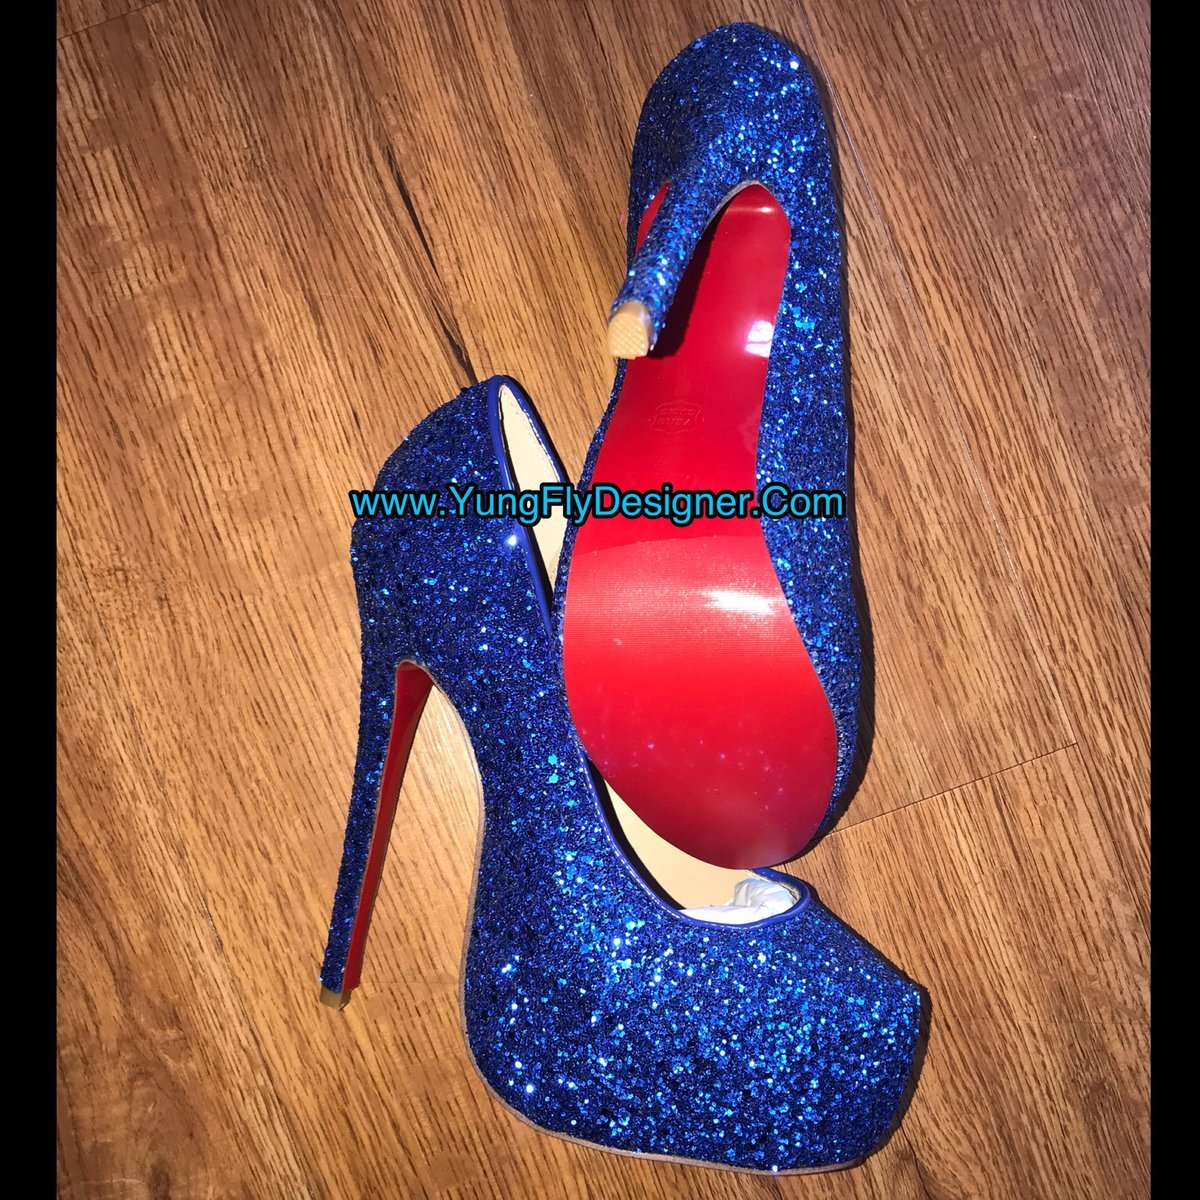 e64d59f1683 Blue Red Bottom Heels -  300.00 – Young Fly Designer